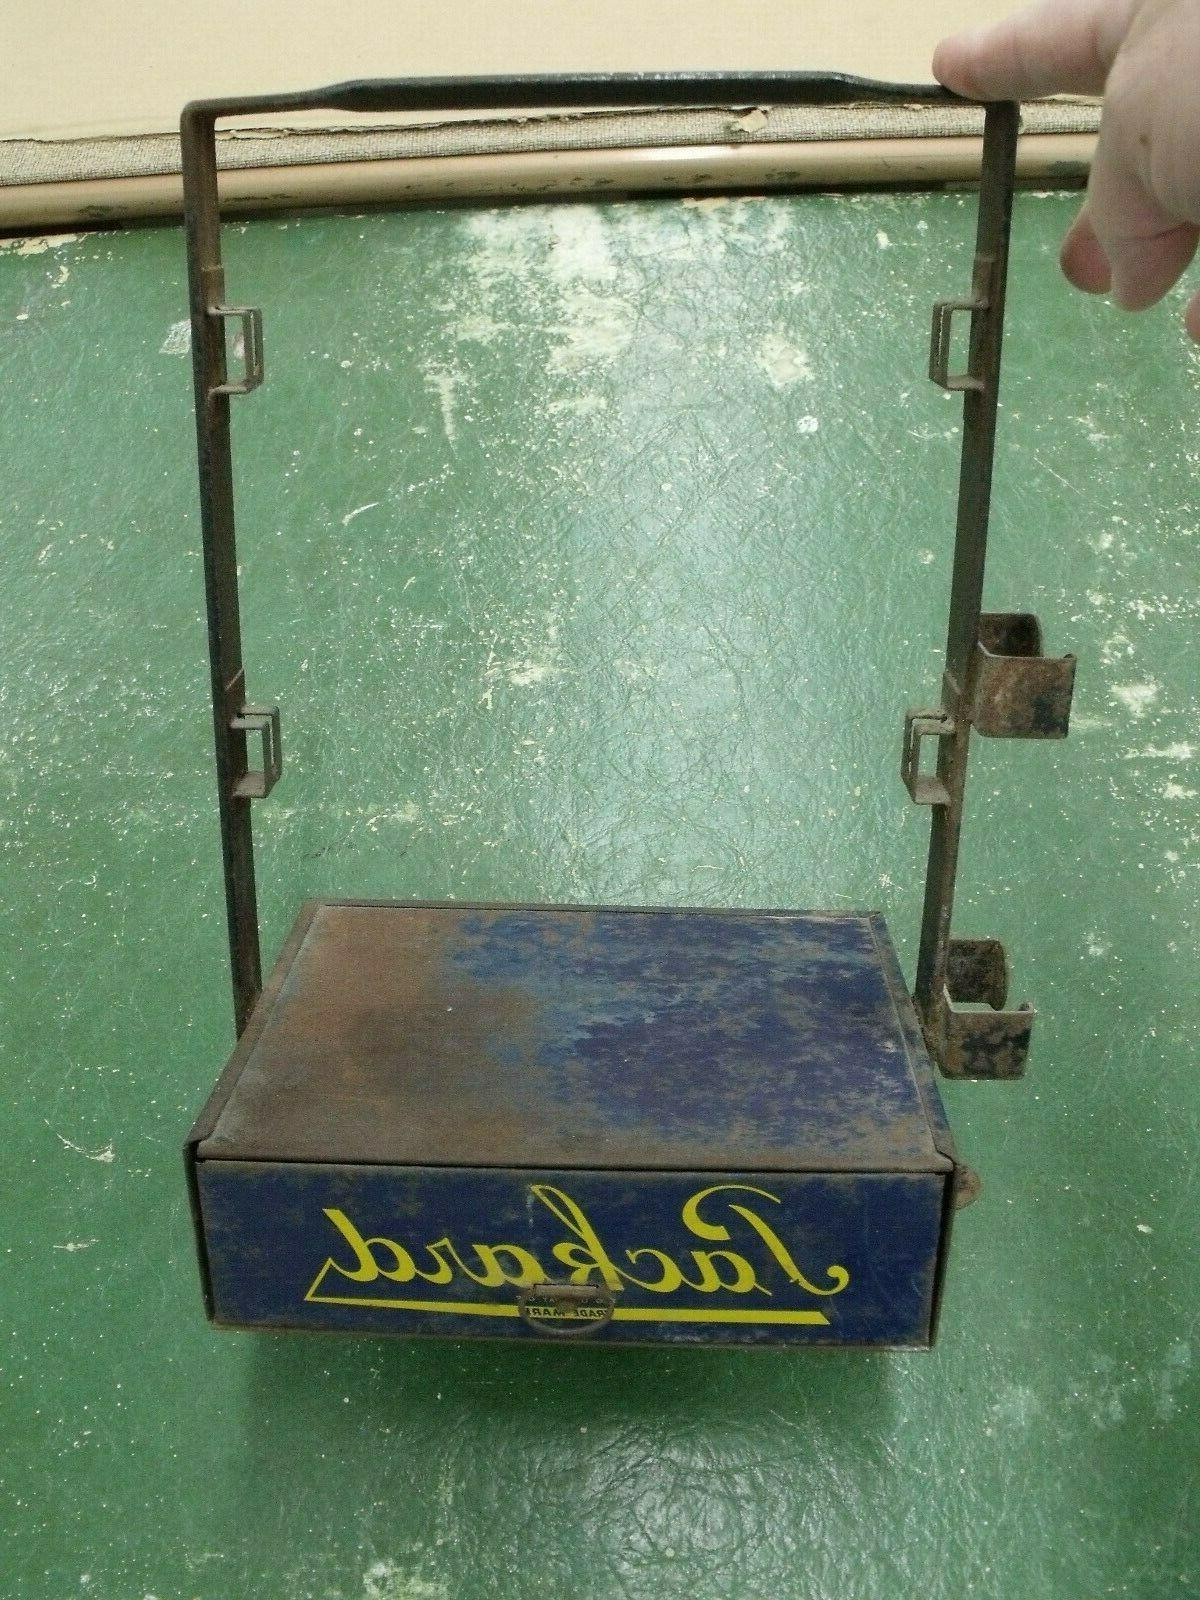 PACKARD Automotive Cables Spark Plug Wire Metal Tote Cabinet